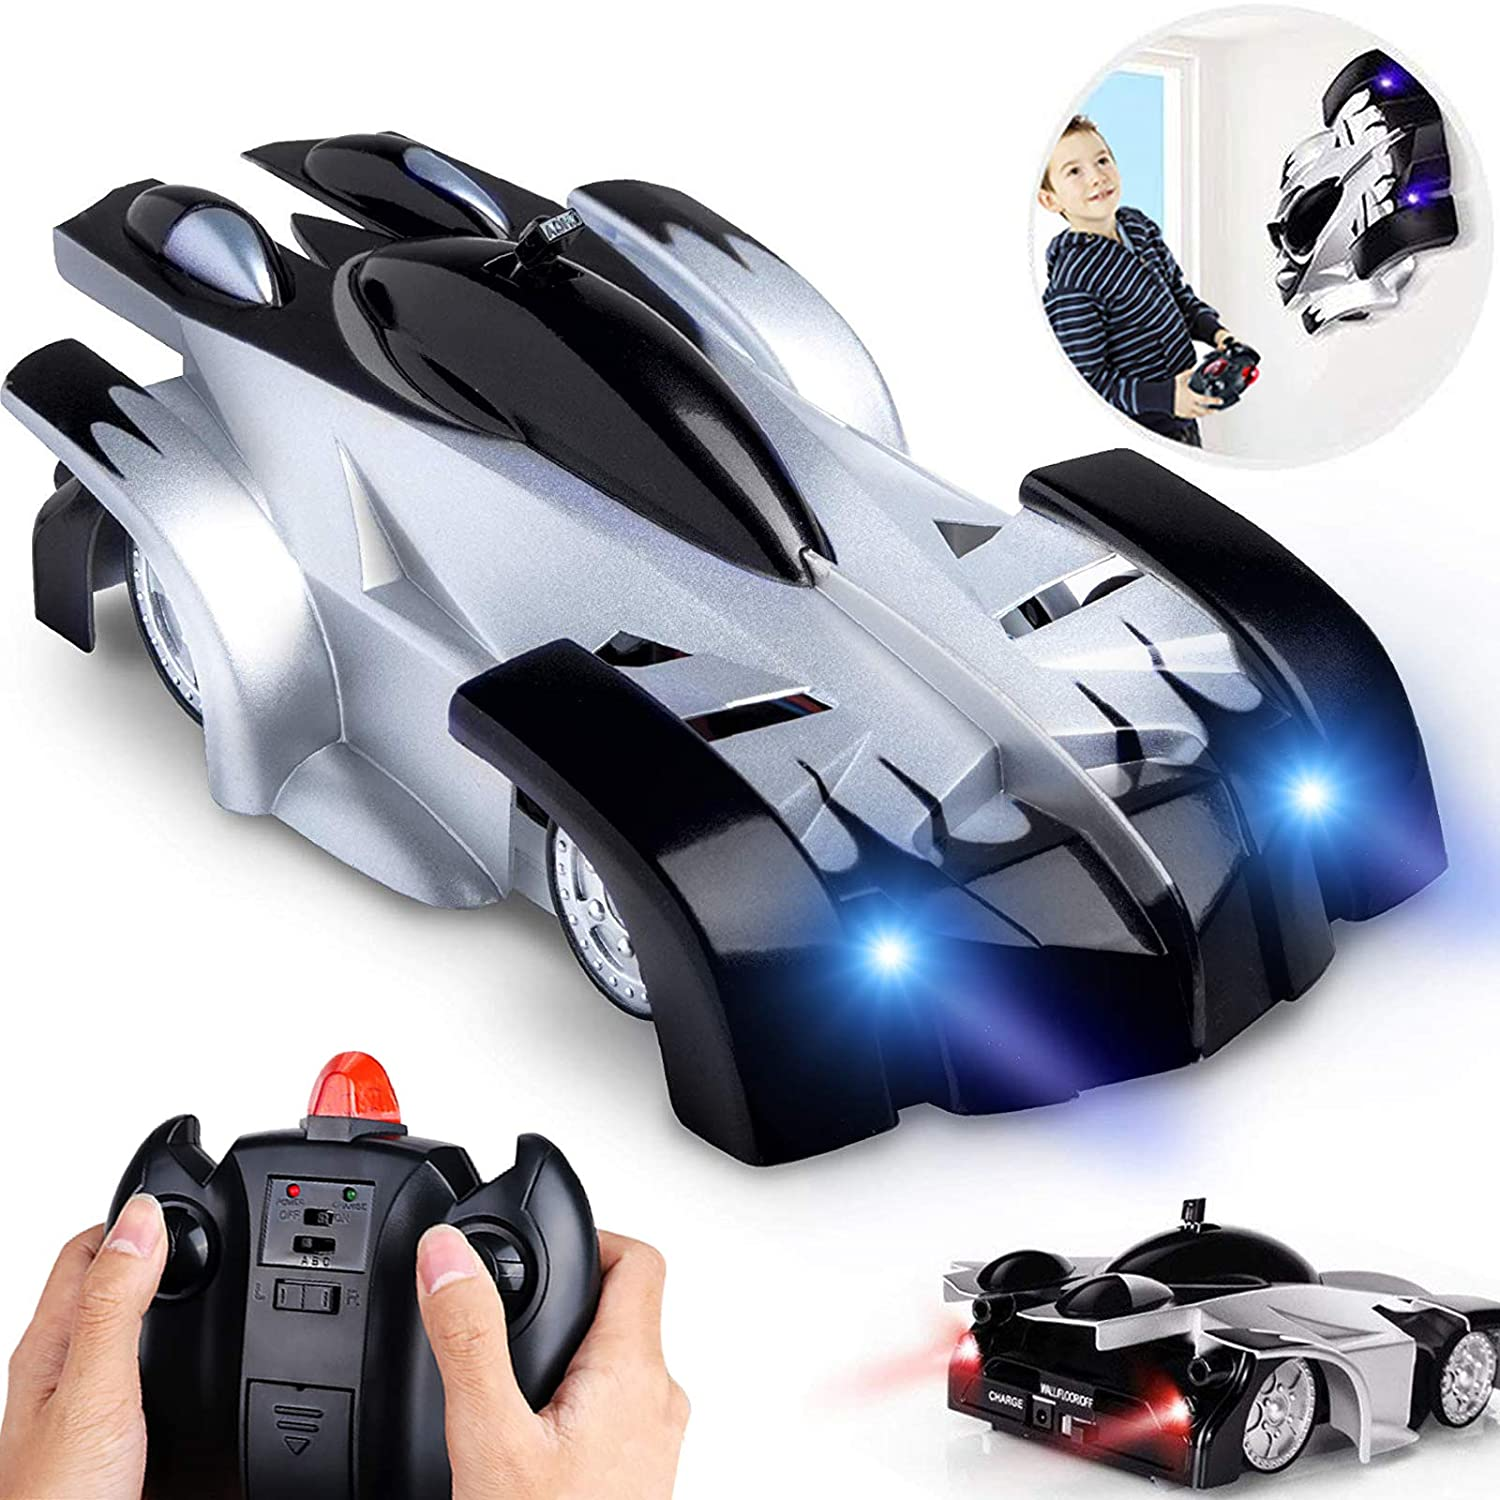 Cars For Kids >> Amazon Com Rc Cars For Kids Wall Climbing Remote Control Cars For